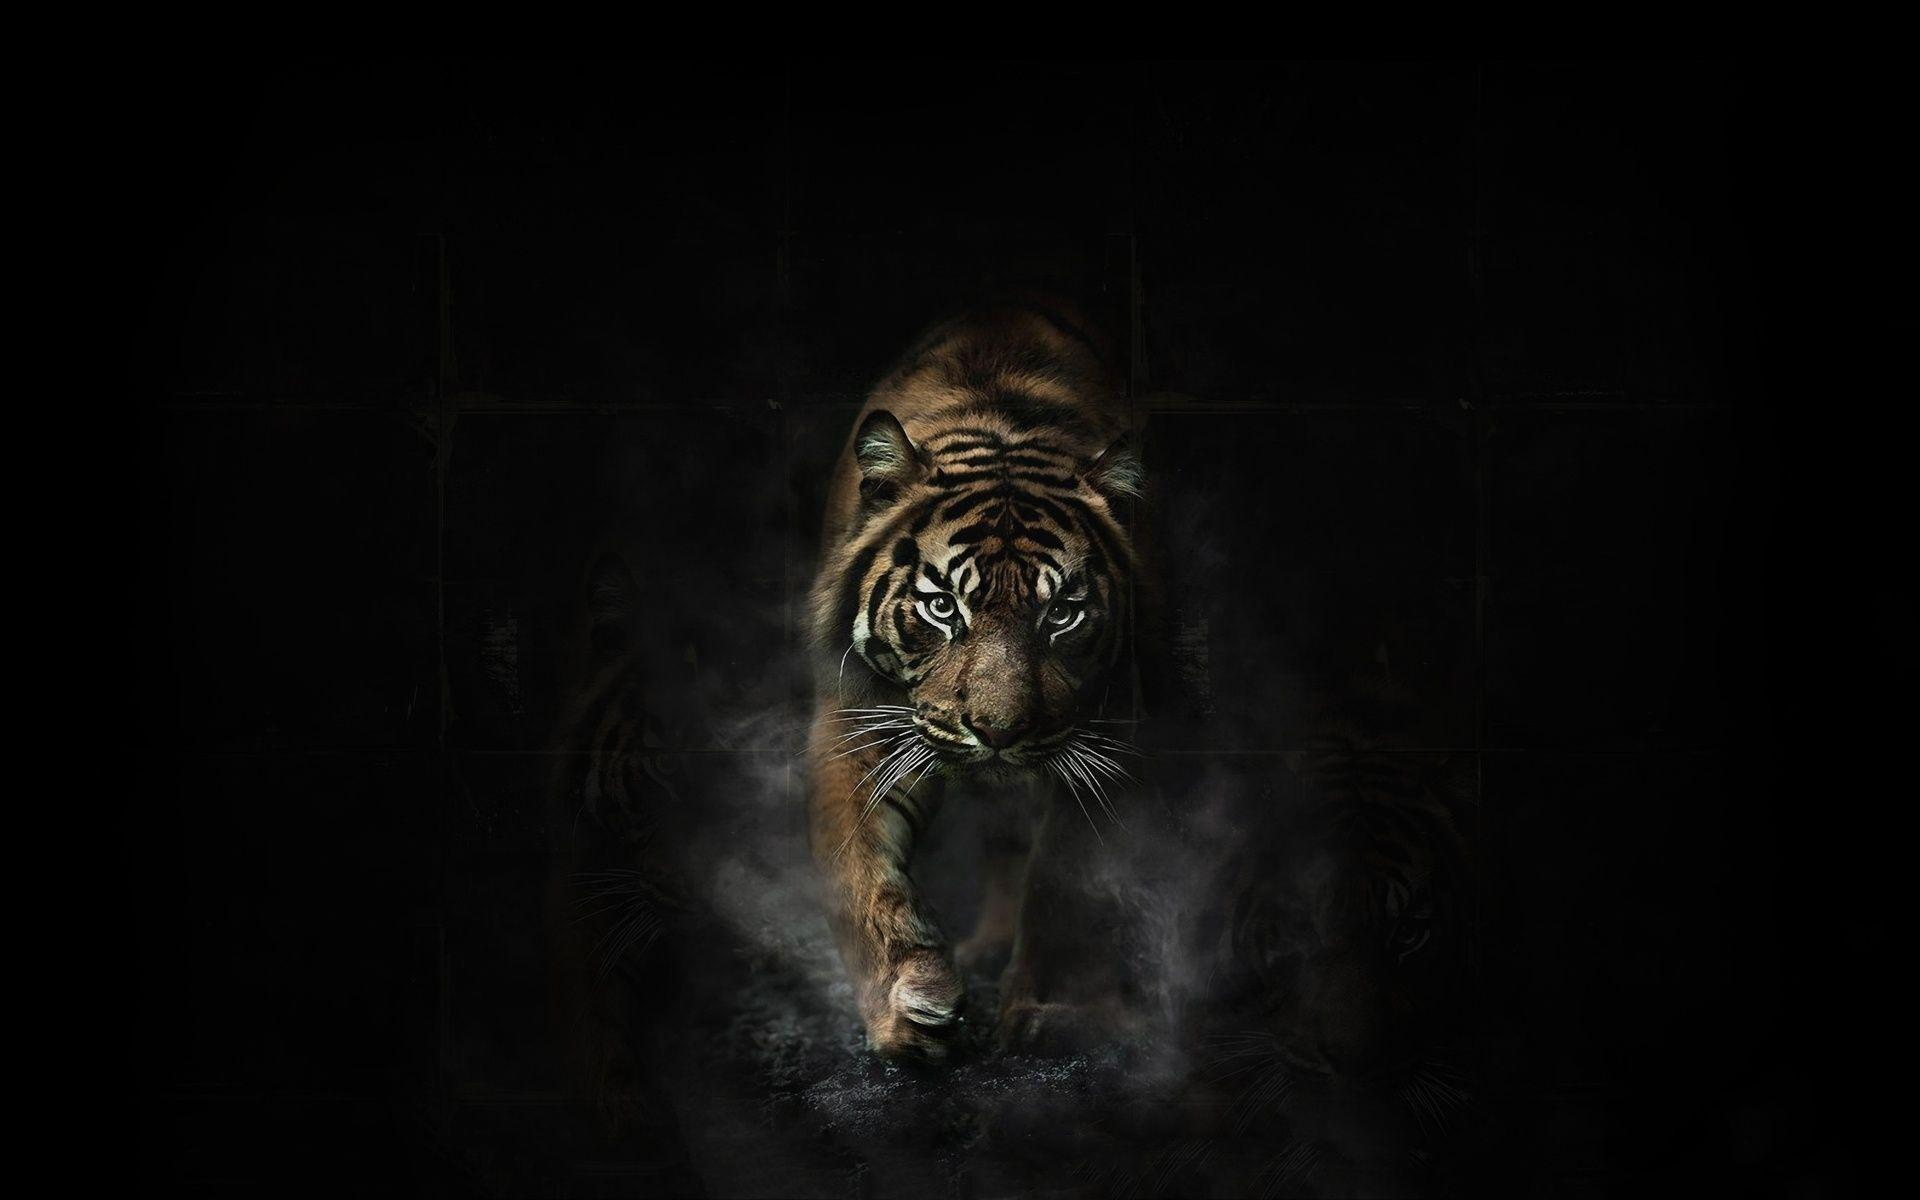 Angry Tiger Wallpapers - Full HD wallpaper search